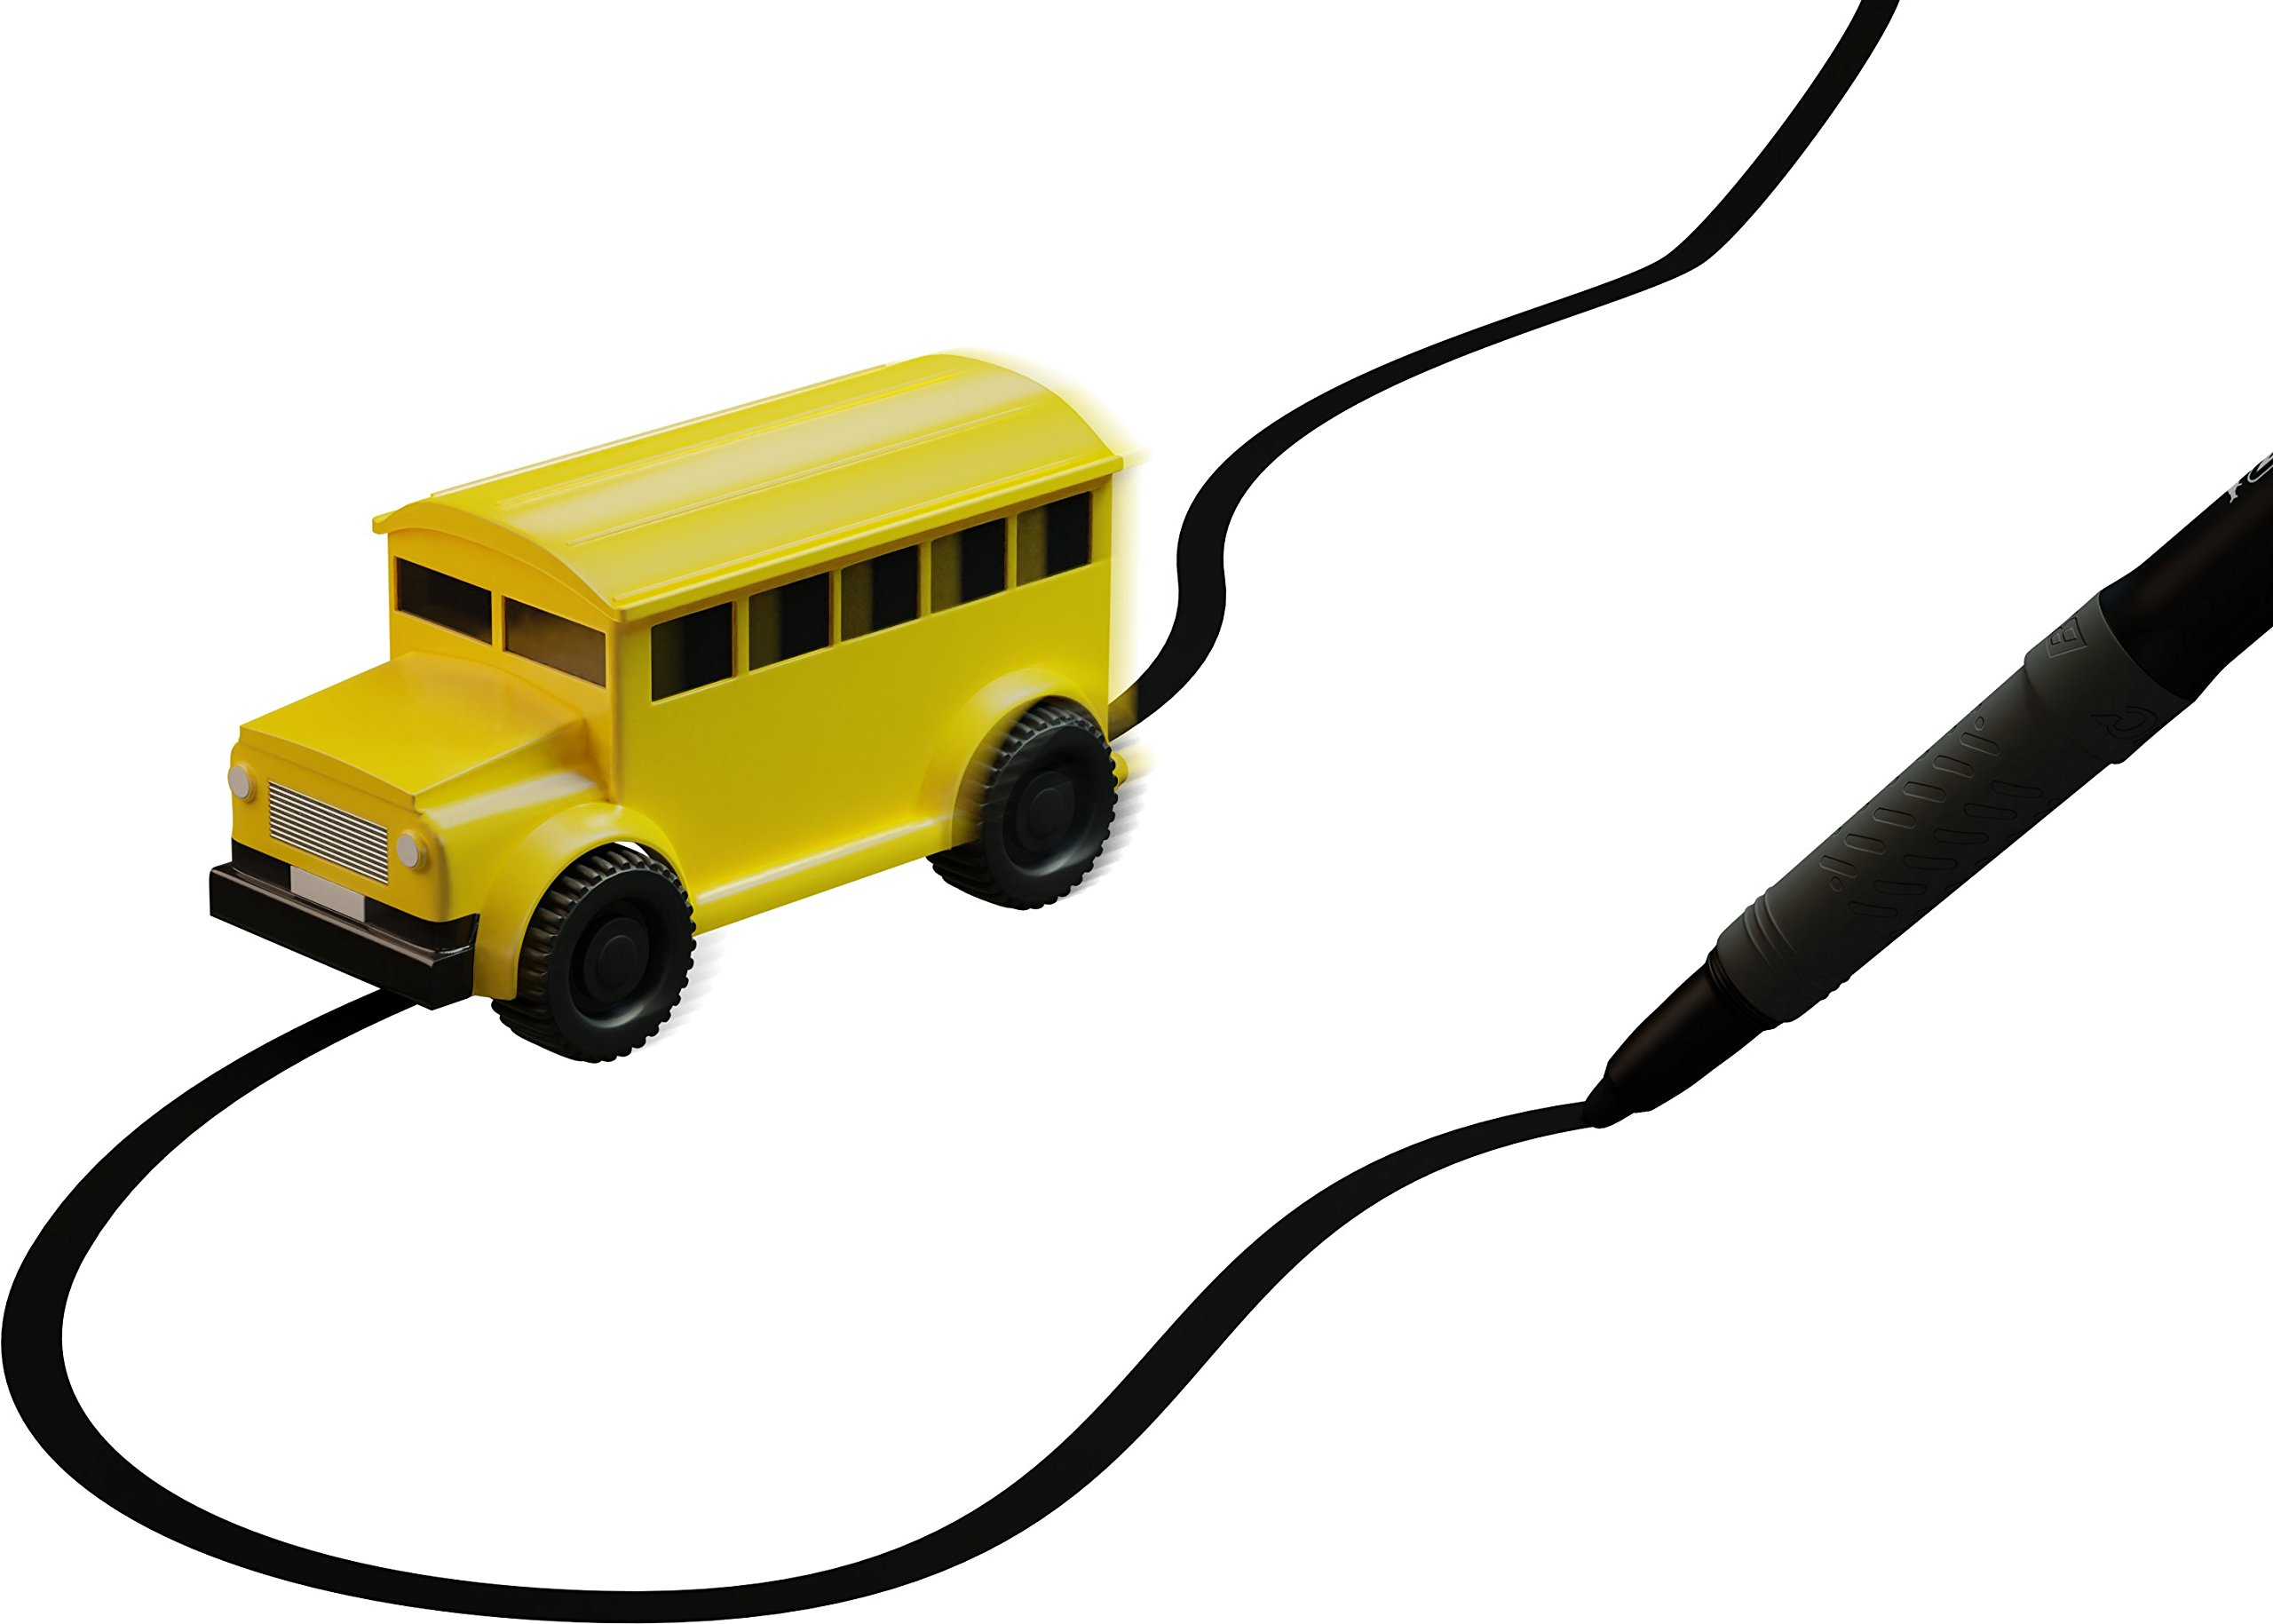 Nylea Magic Vehicles Inductive Truck [Follows Black Line] Magic Toy Car for Kids & Children - Best Toddler Toys MINI Magic Pen Inductive Fangle Kids Car Follow (Yellow School Bus)